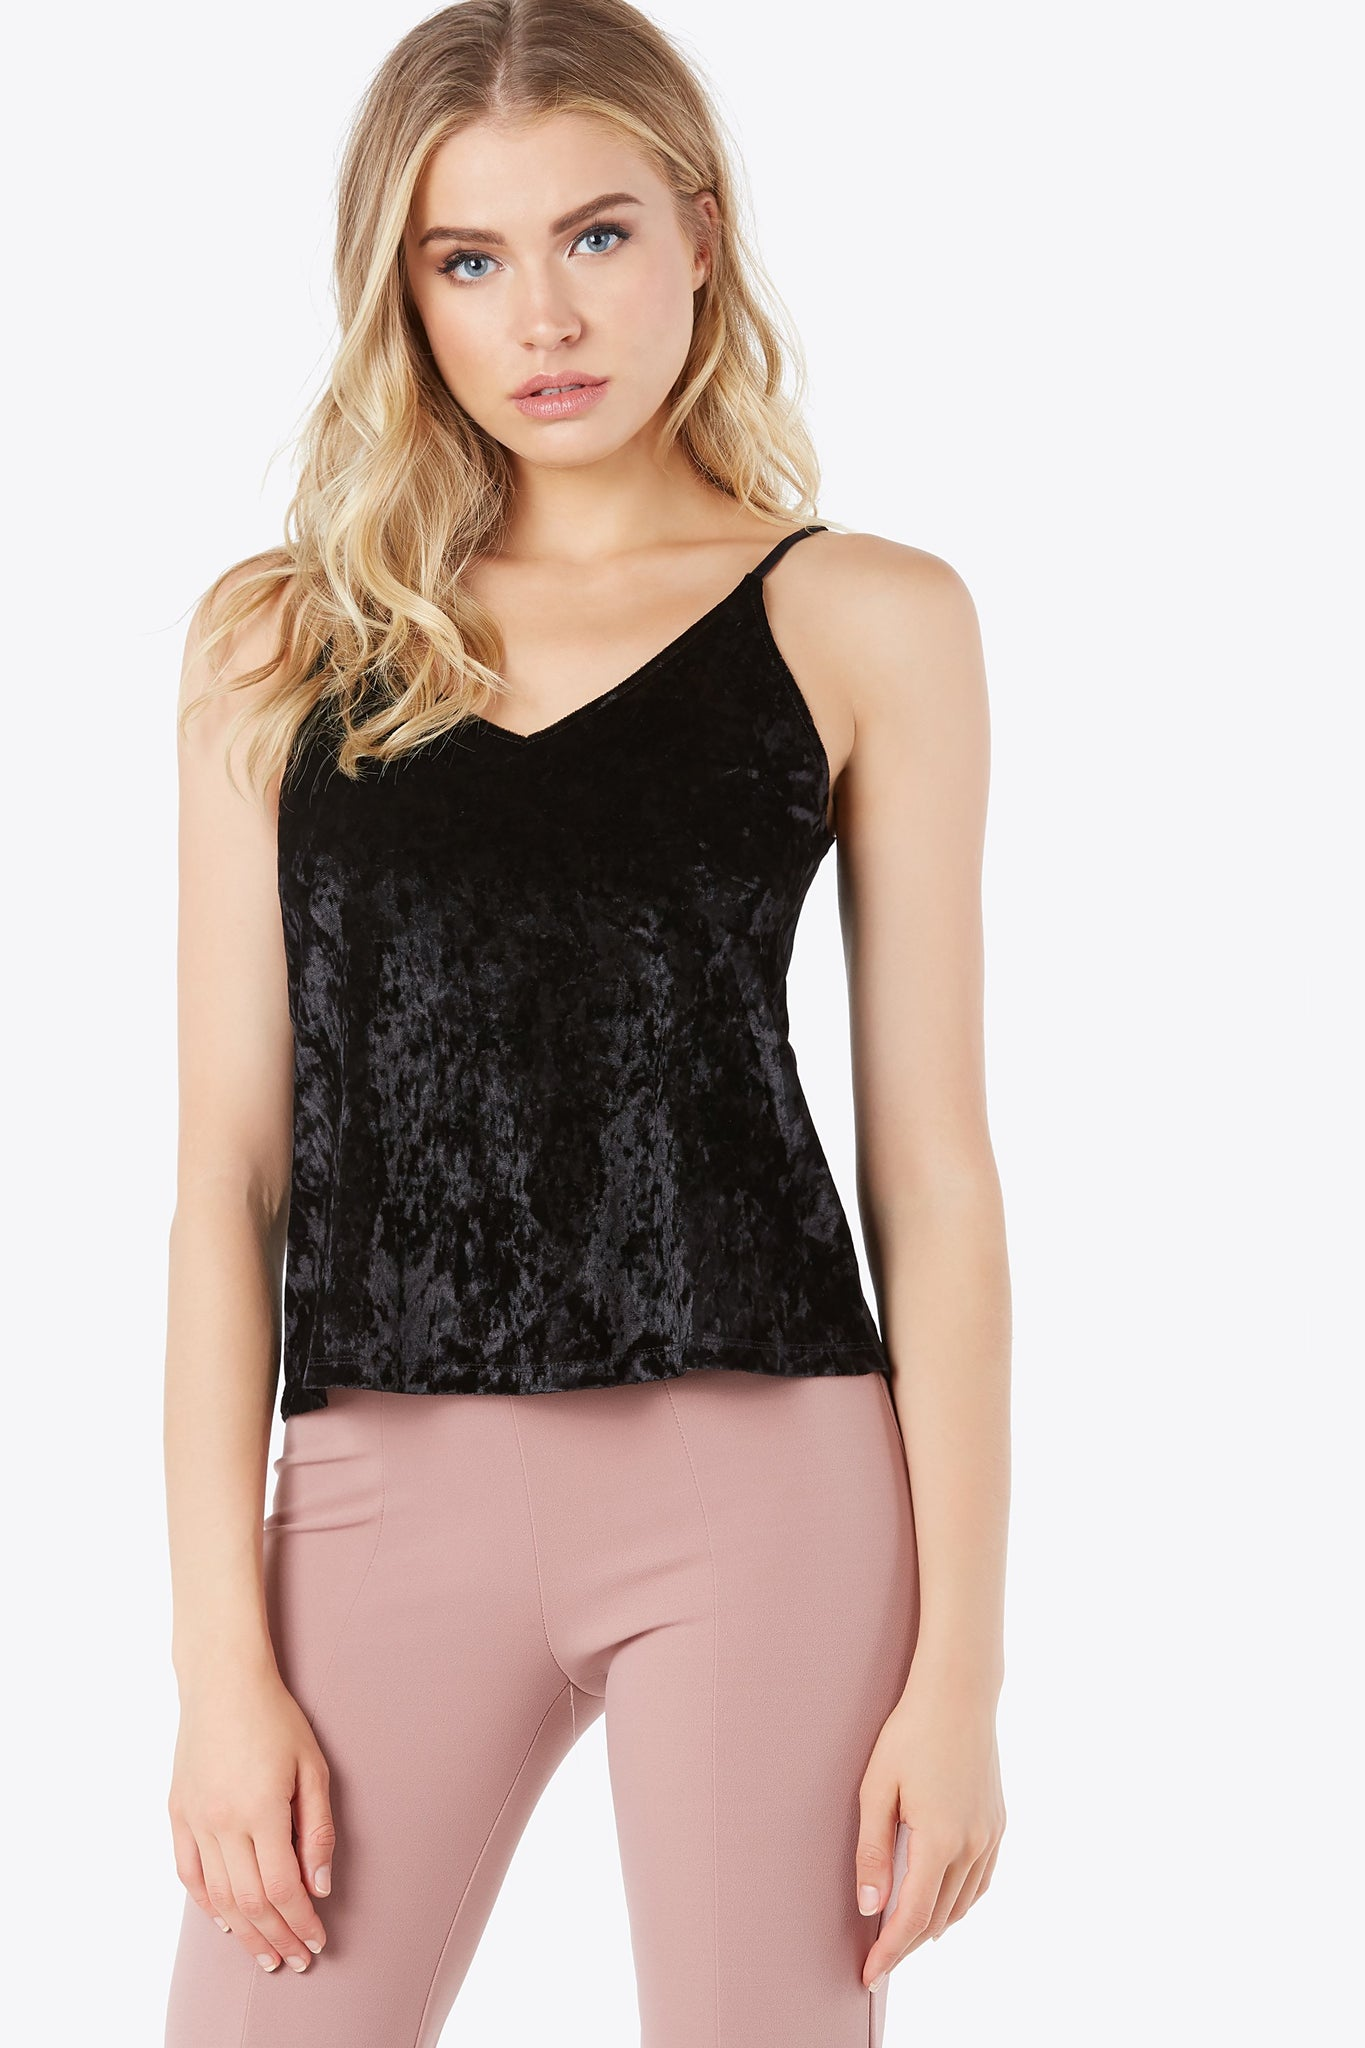 Crushed velvet cami top. Strap accent across chest.